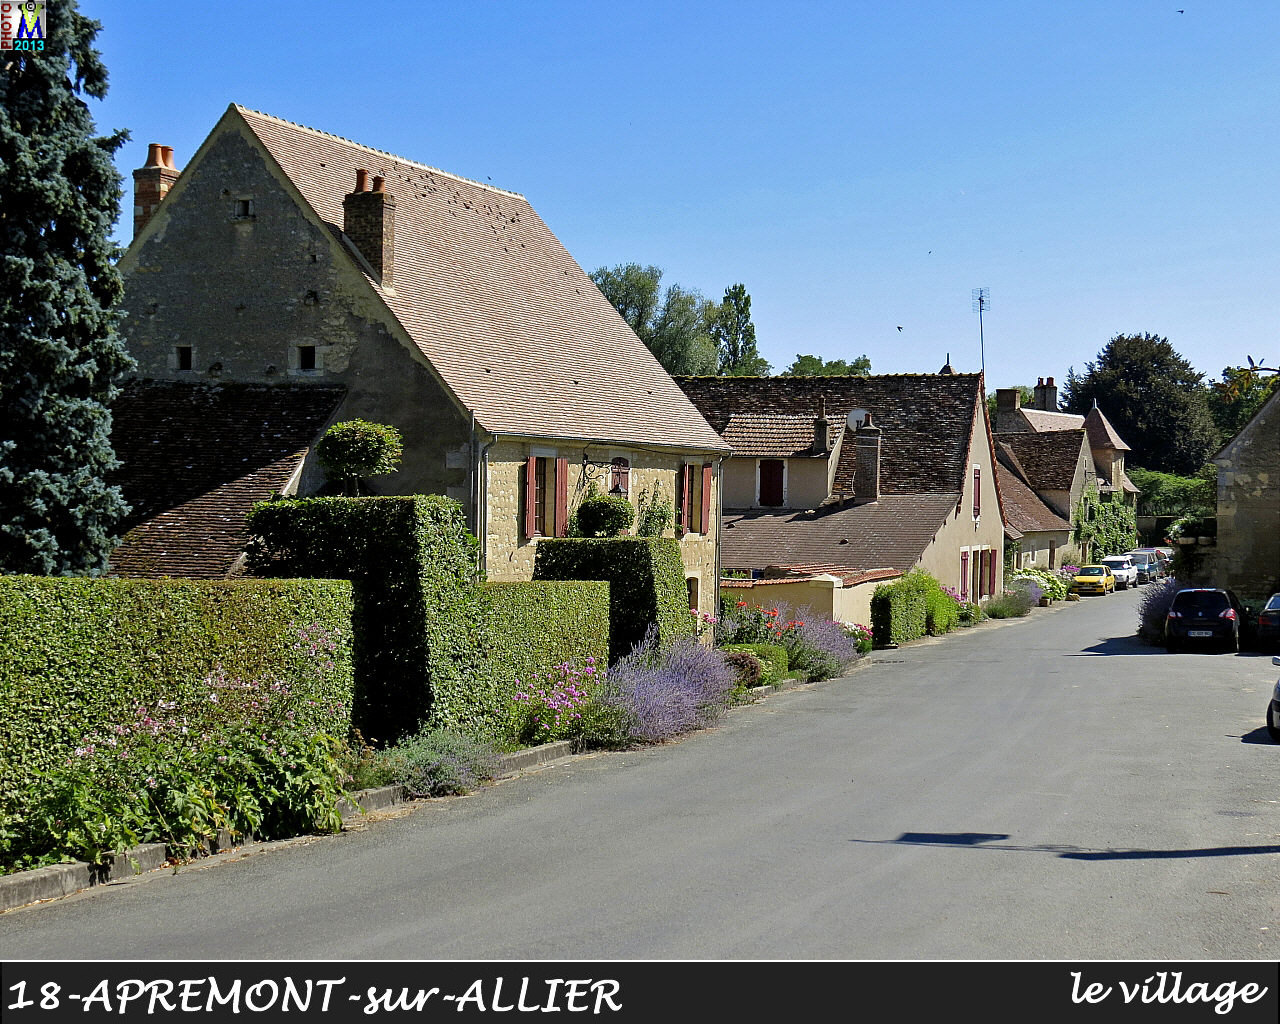 18APREMONT-ALLIER_village_138.jpg